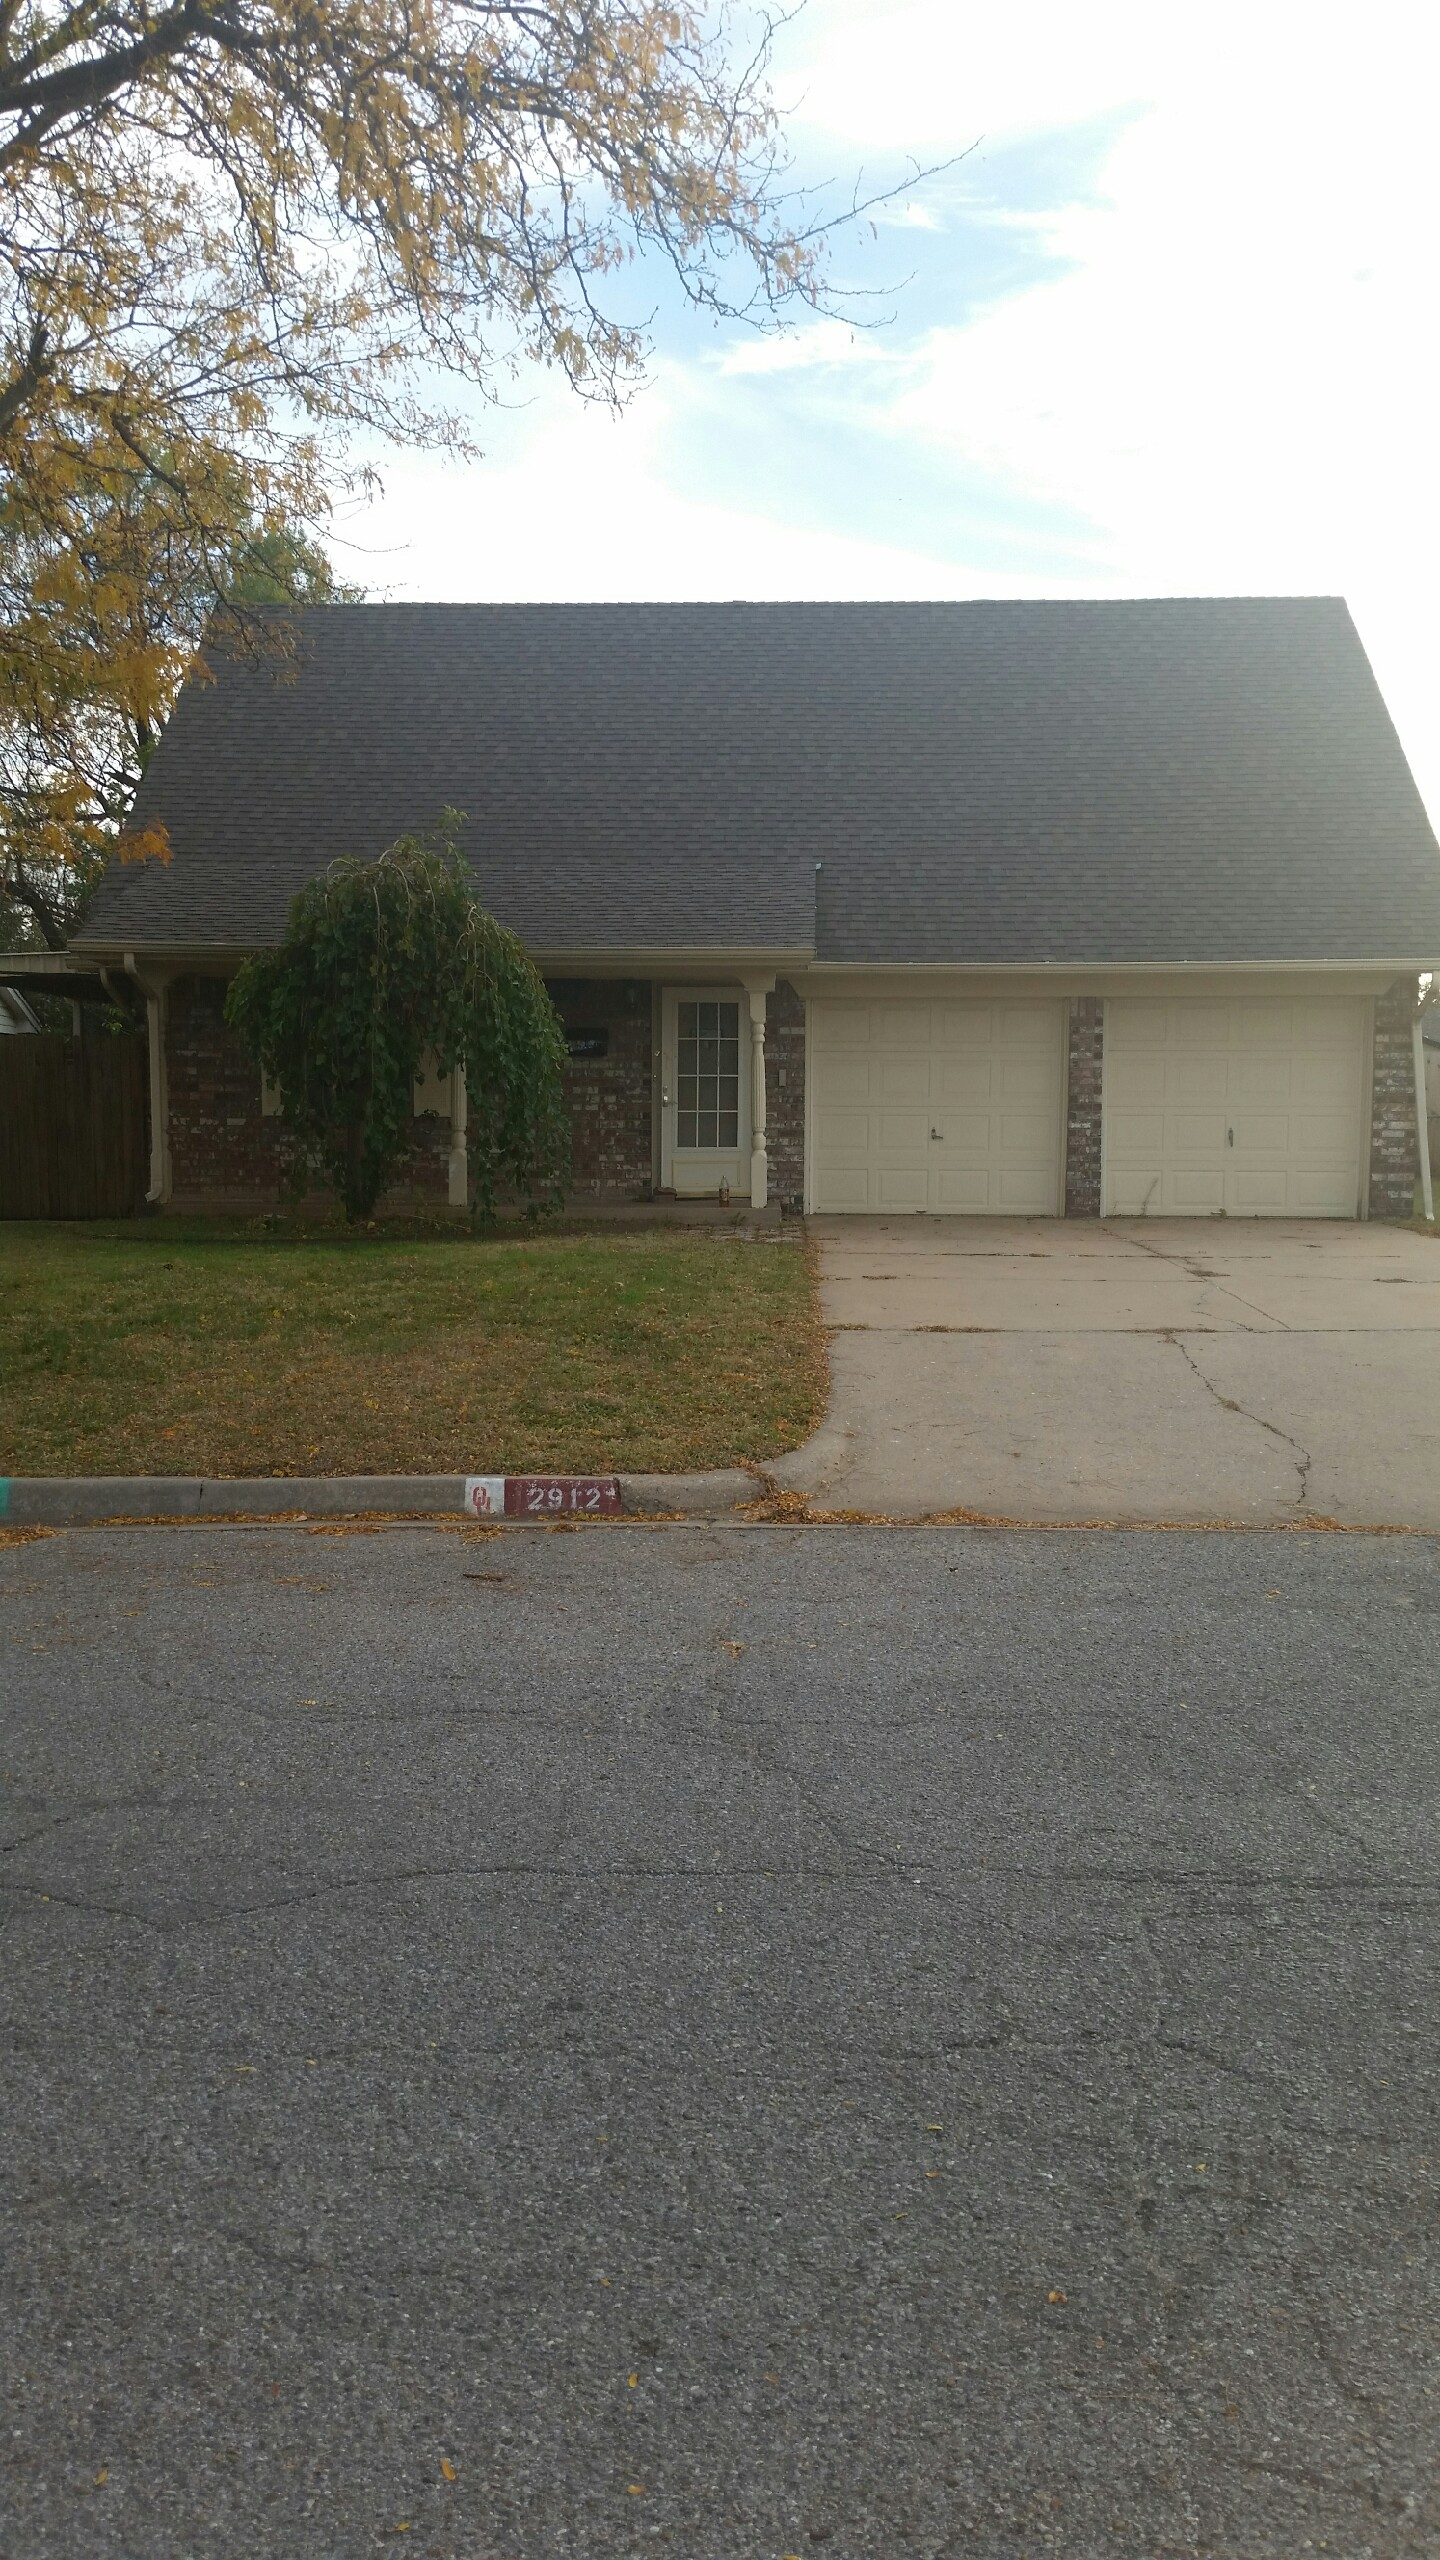 Rent to Own Homes Oklahoma City   Rent to Own Oklahoma City  Rent to own homes Oklahoma City   Key Properties OKC Sells Houses. Rent To Own Homes In Oklahoma City Area. Home Design Ideas